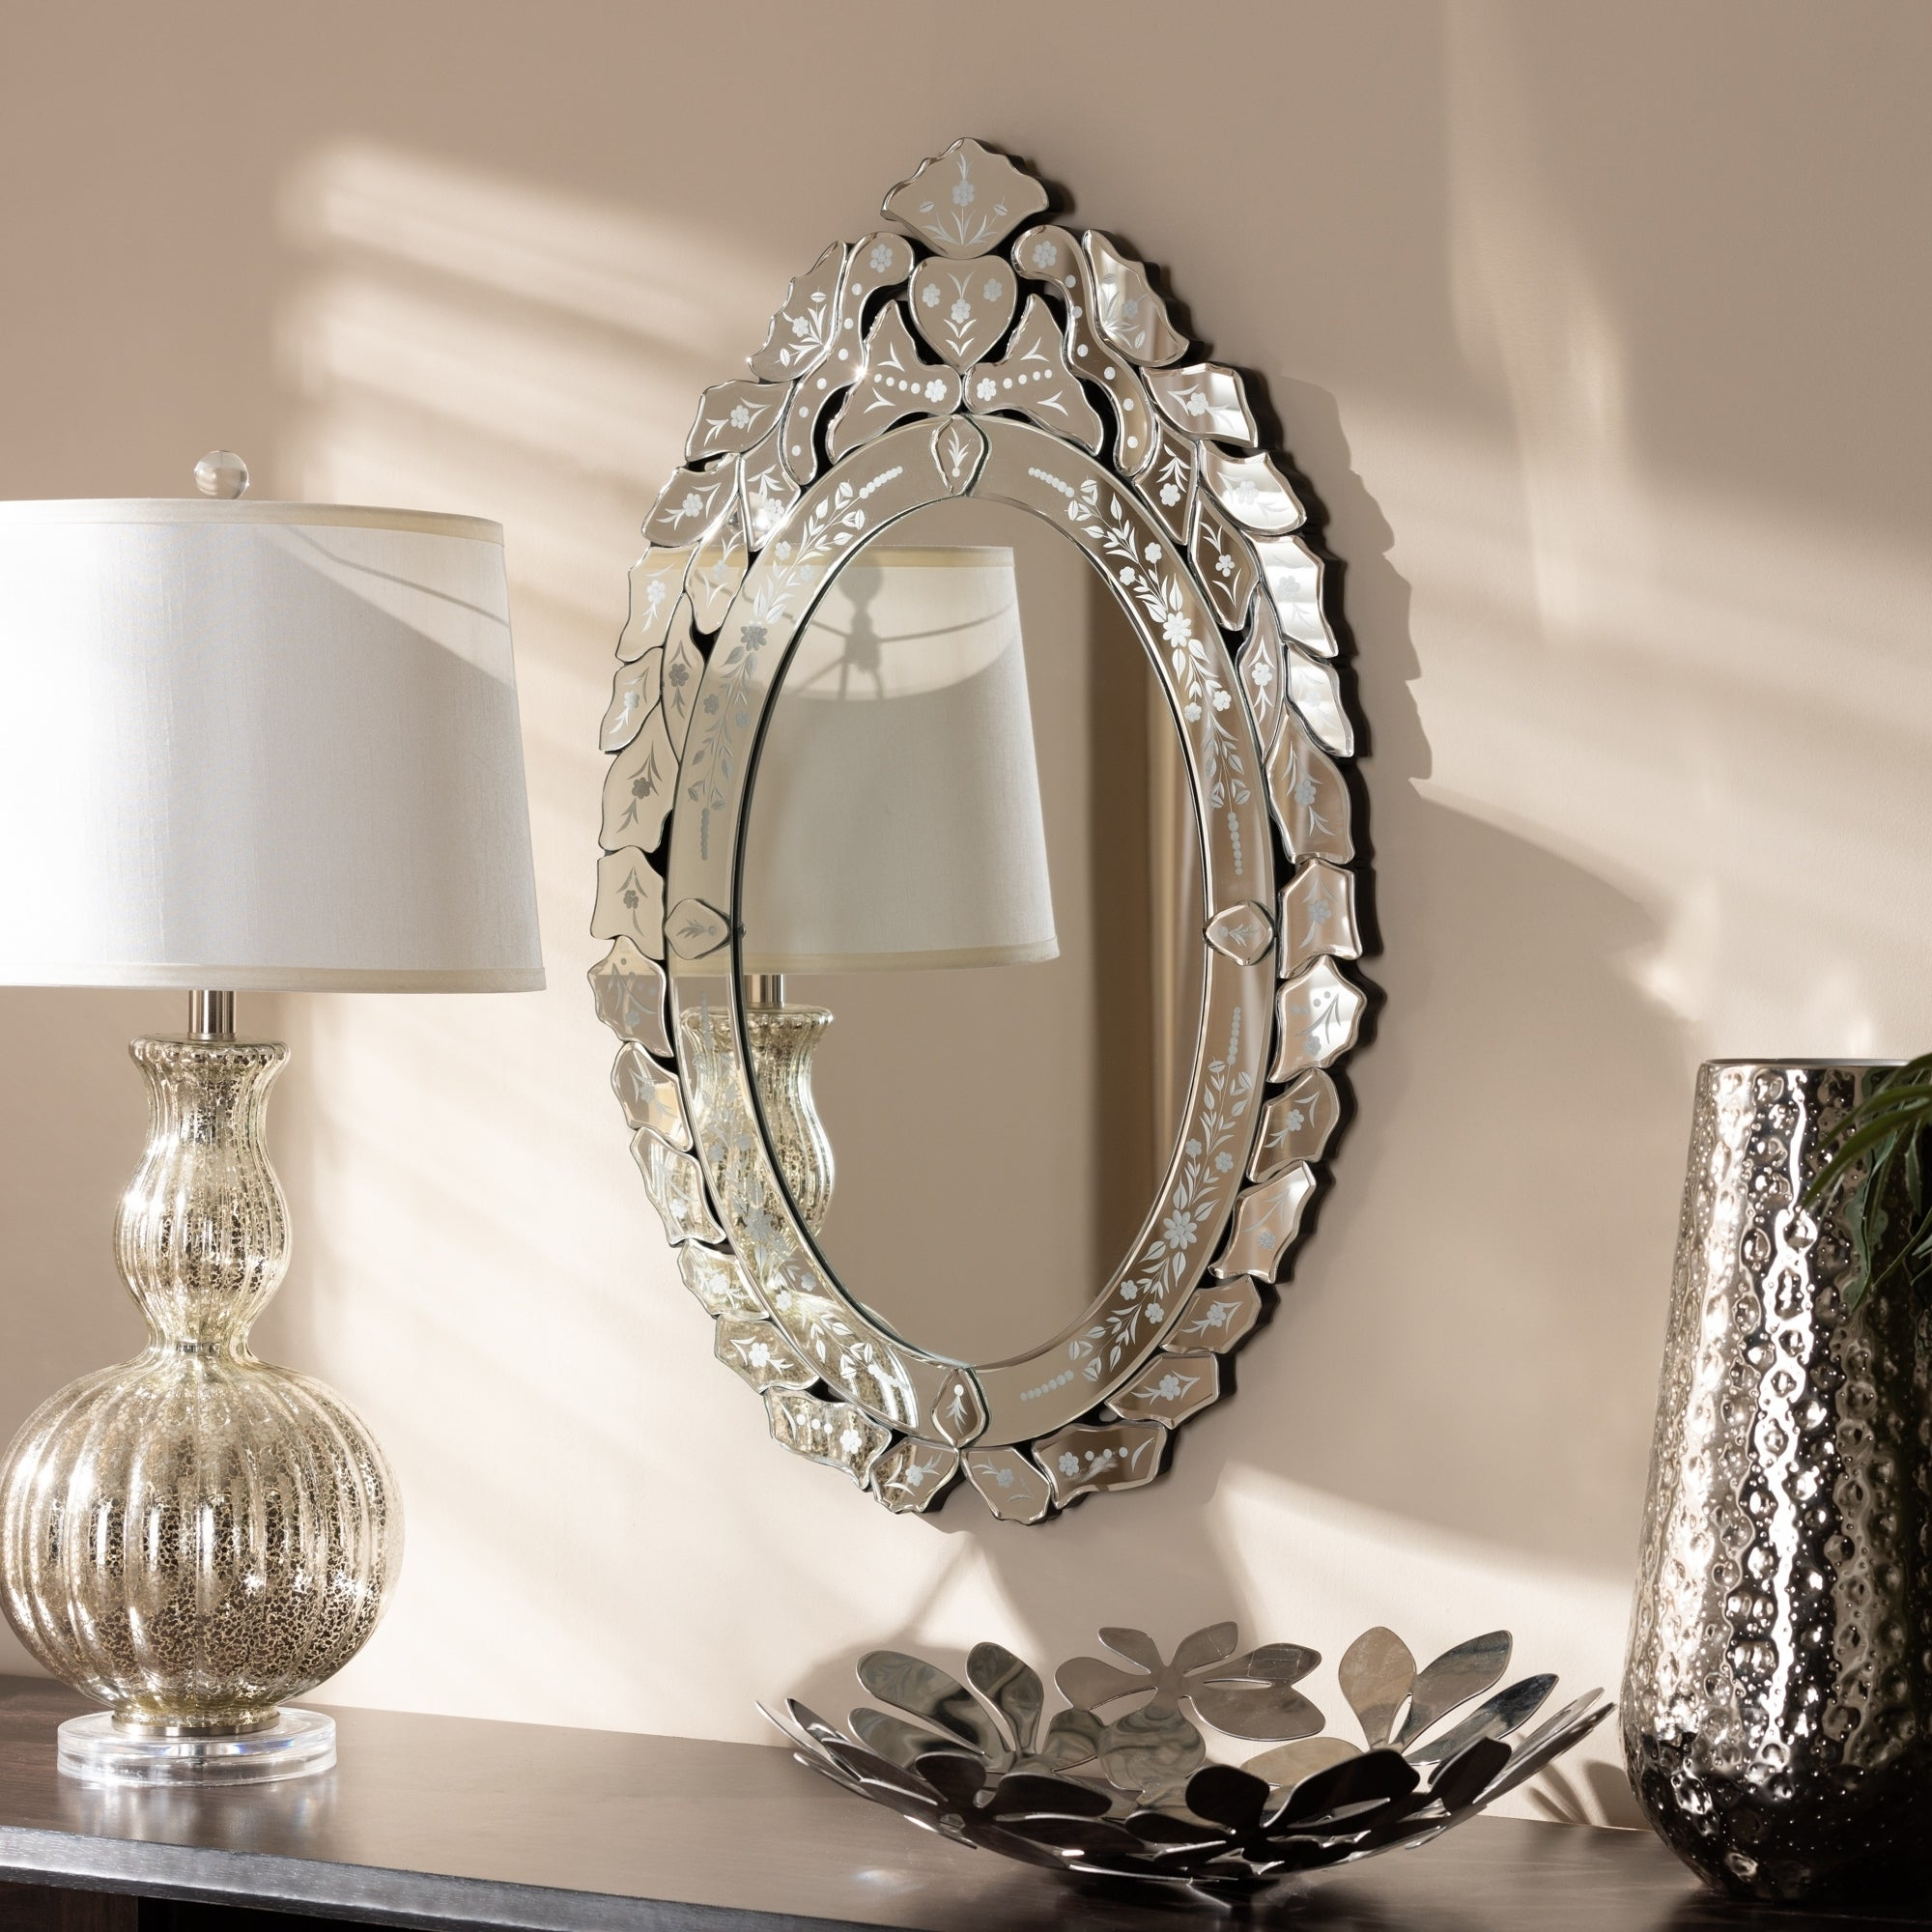 Preferred Traditional Silver Venetian Style Wall Mirrorbaxton Studio – Antique Silver For Bracelet Traditional Accent Mirrors (View 12 of 20)